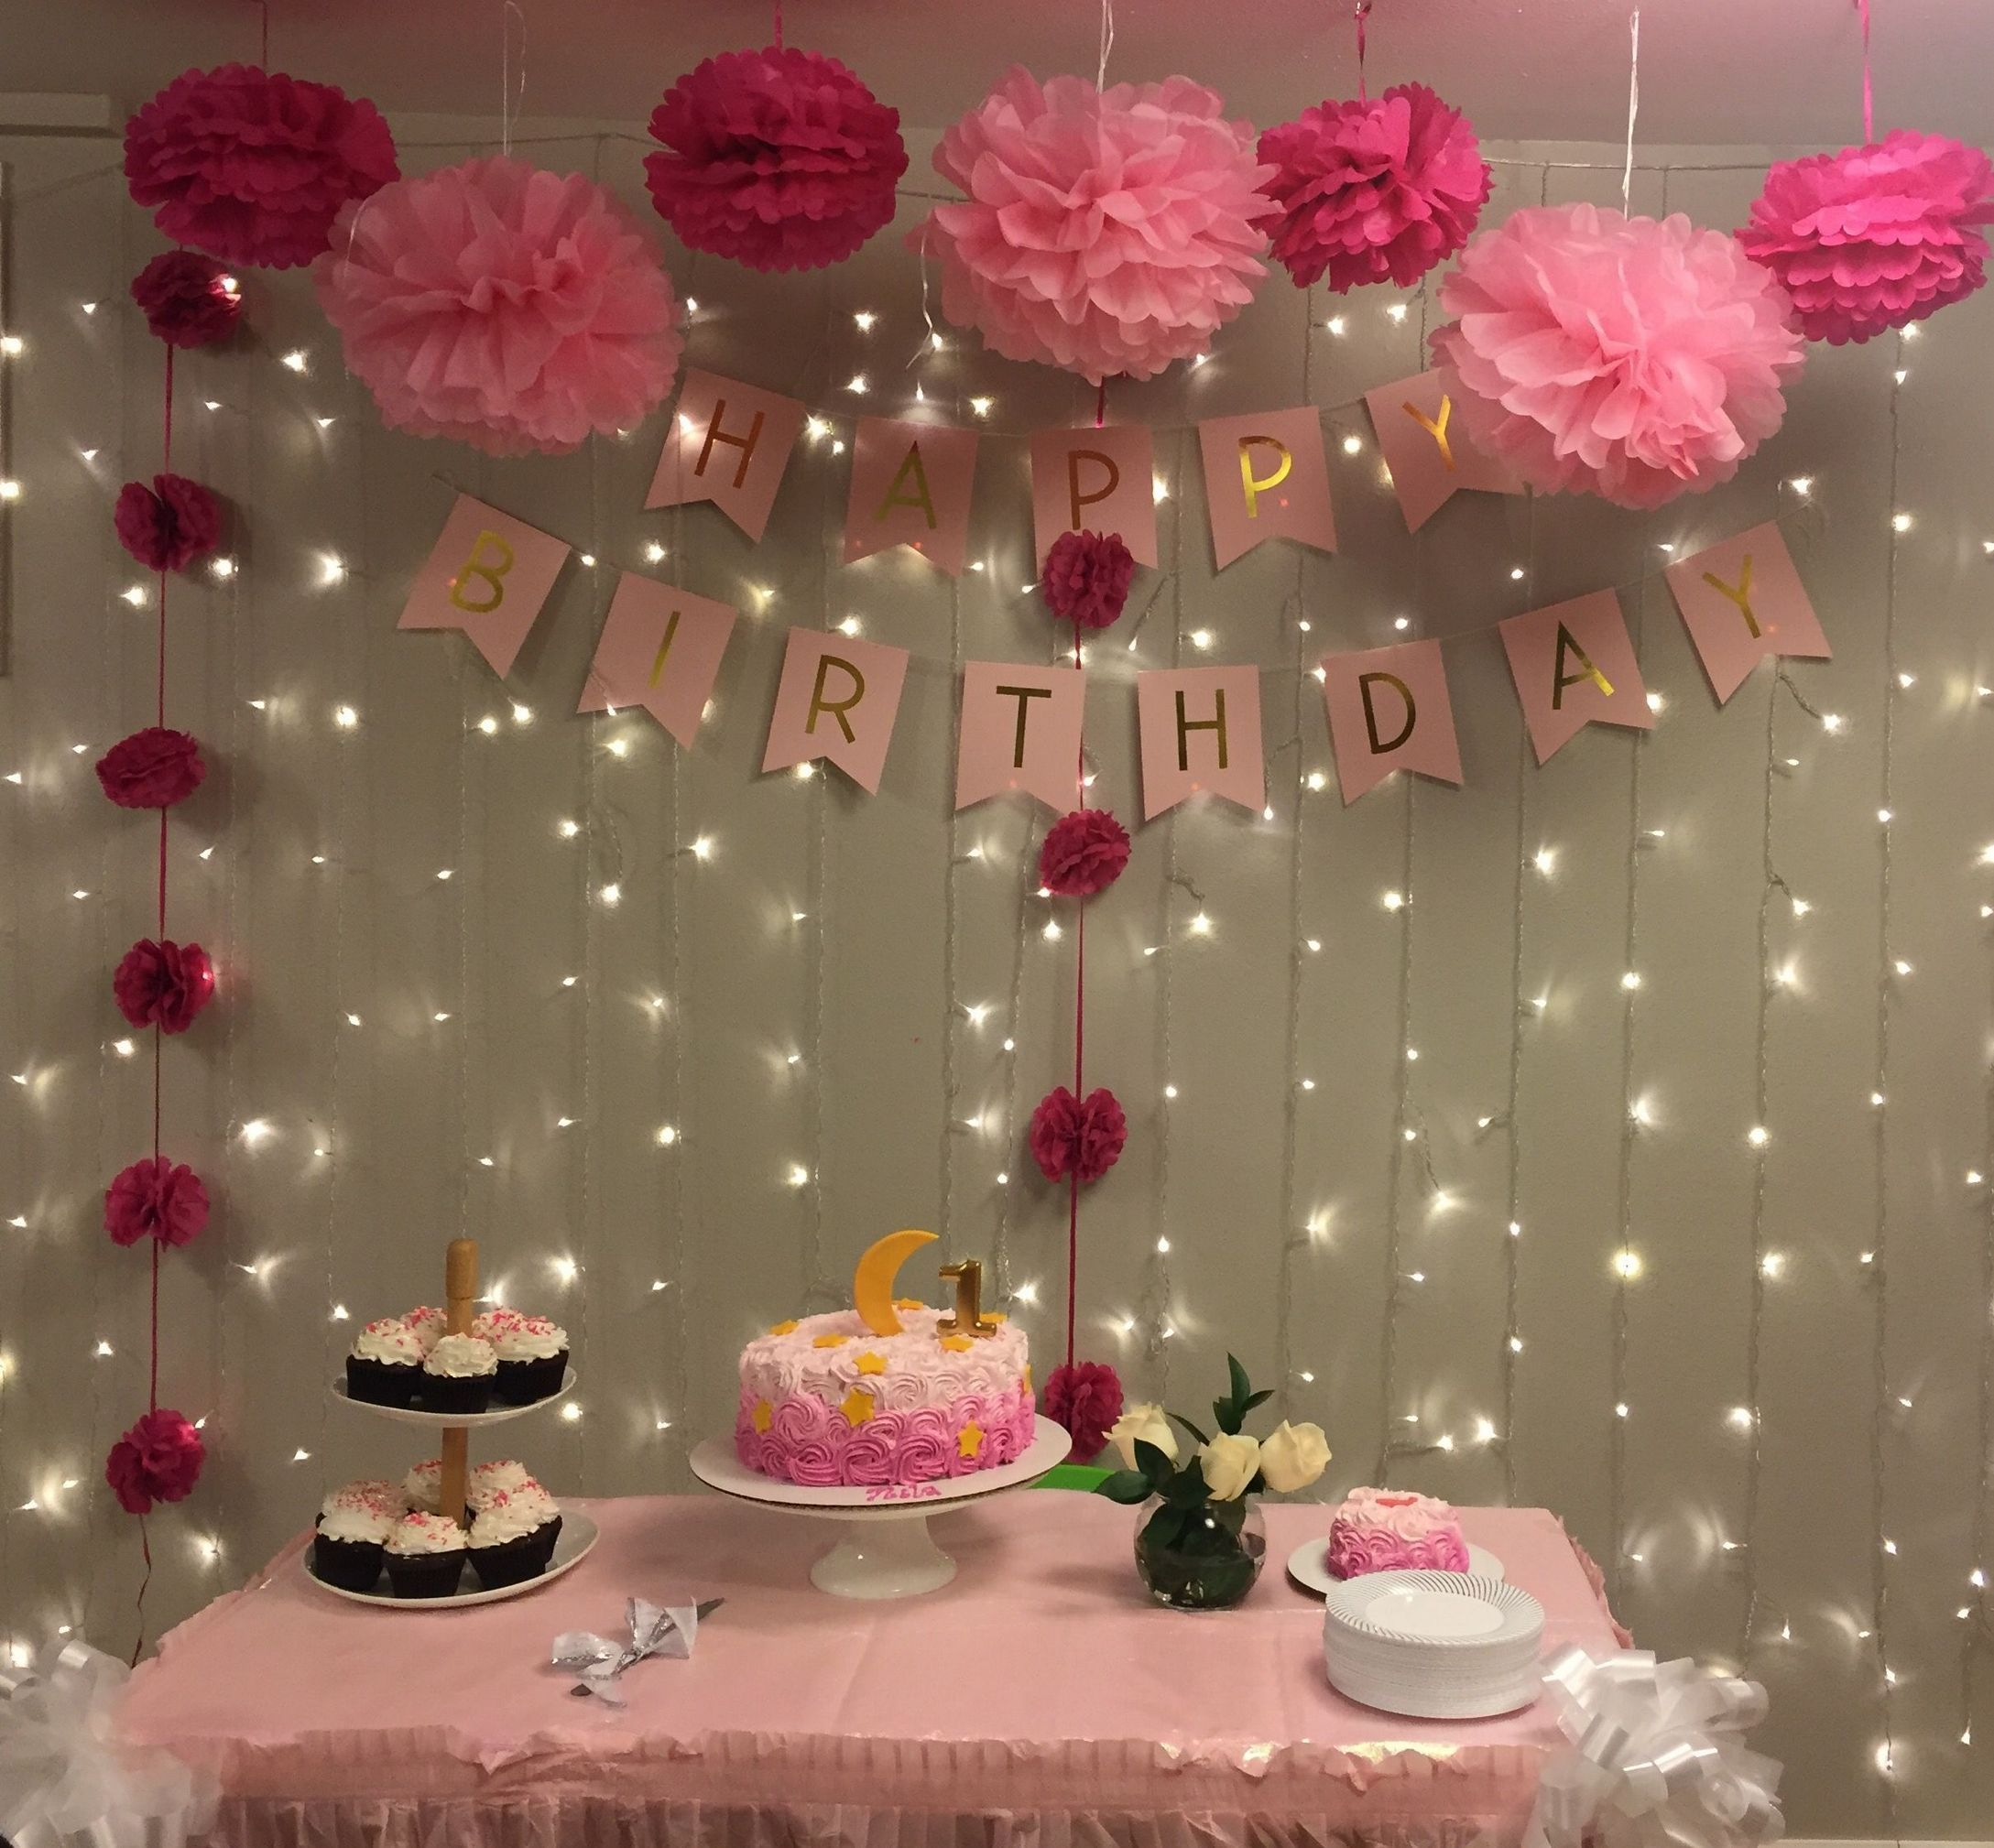 49 Creative And Easy Birthday Party Decoration Ideas Trend 2020 Easy Birthday Party Decorations Simple Birthday Party Simple Birthday Decorations